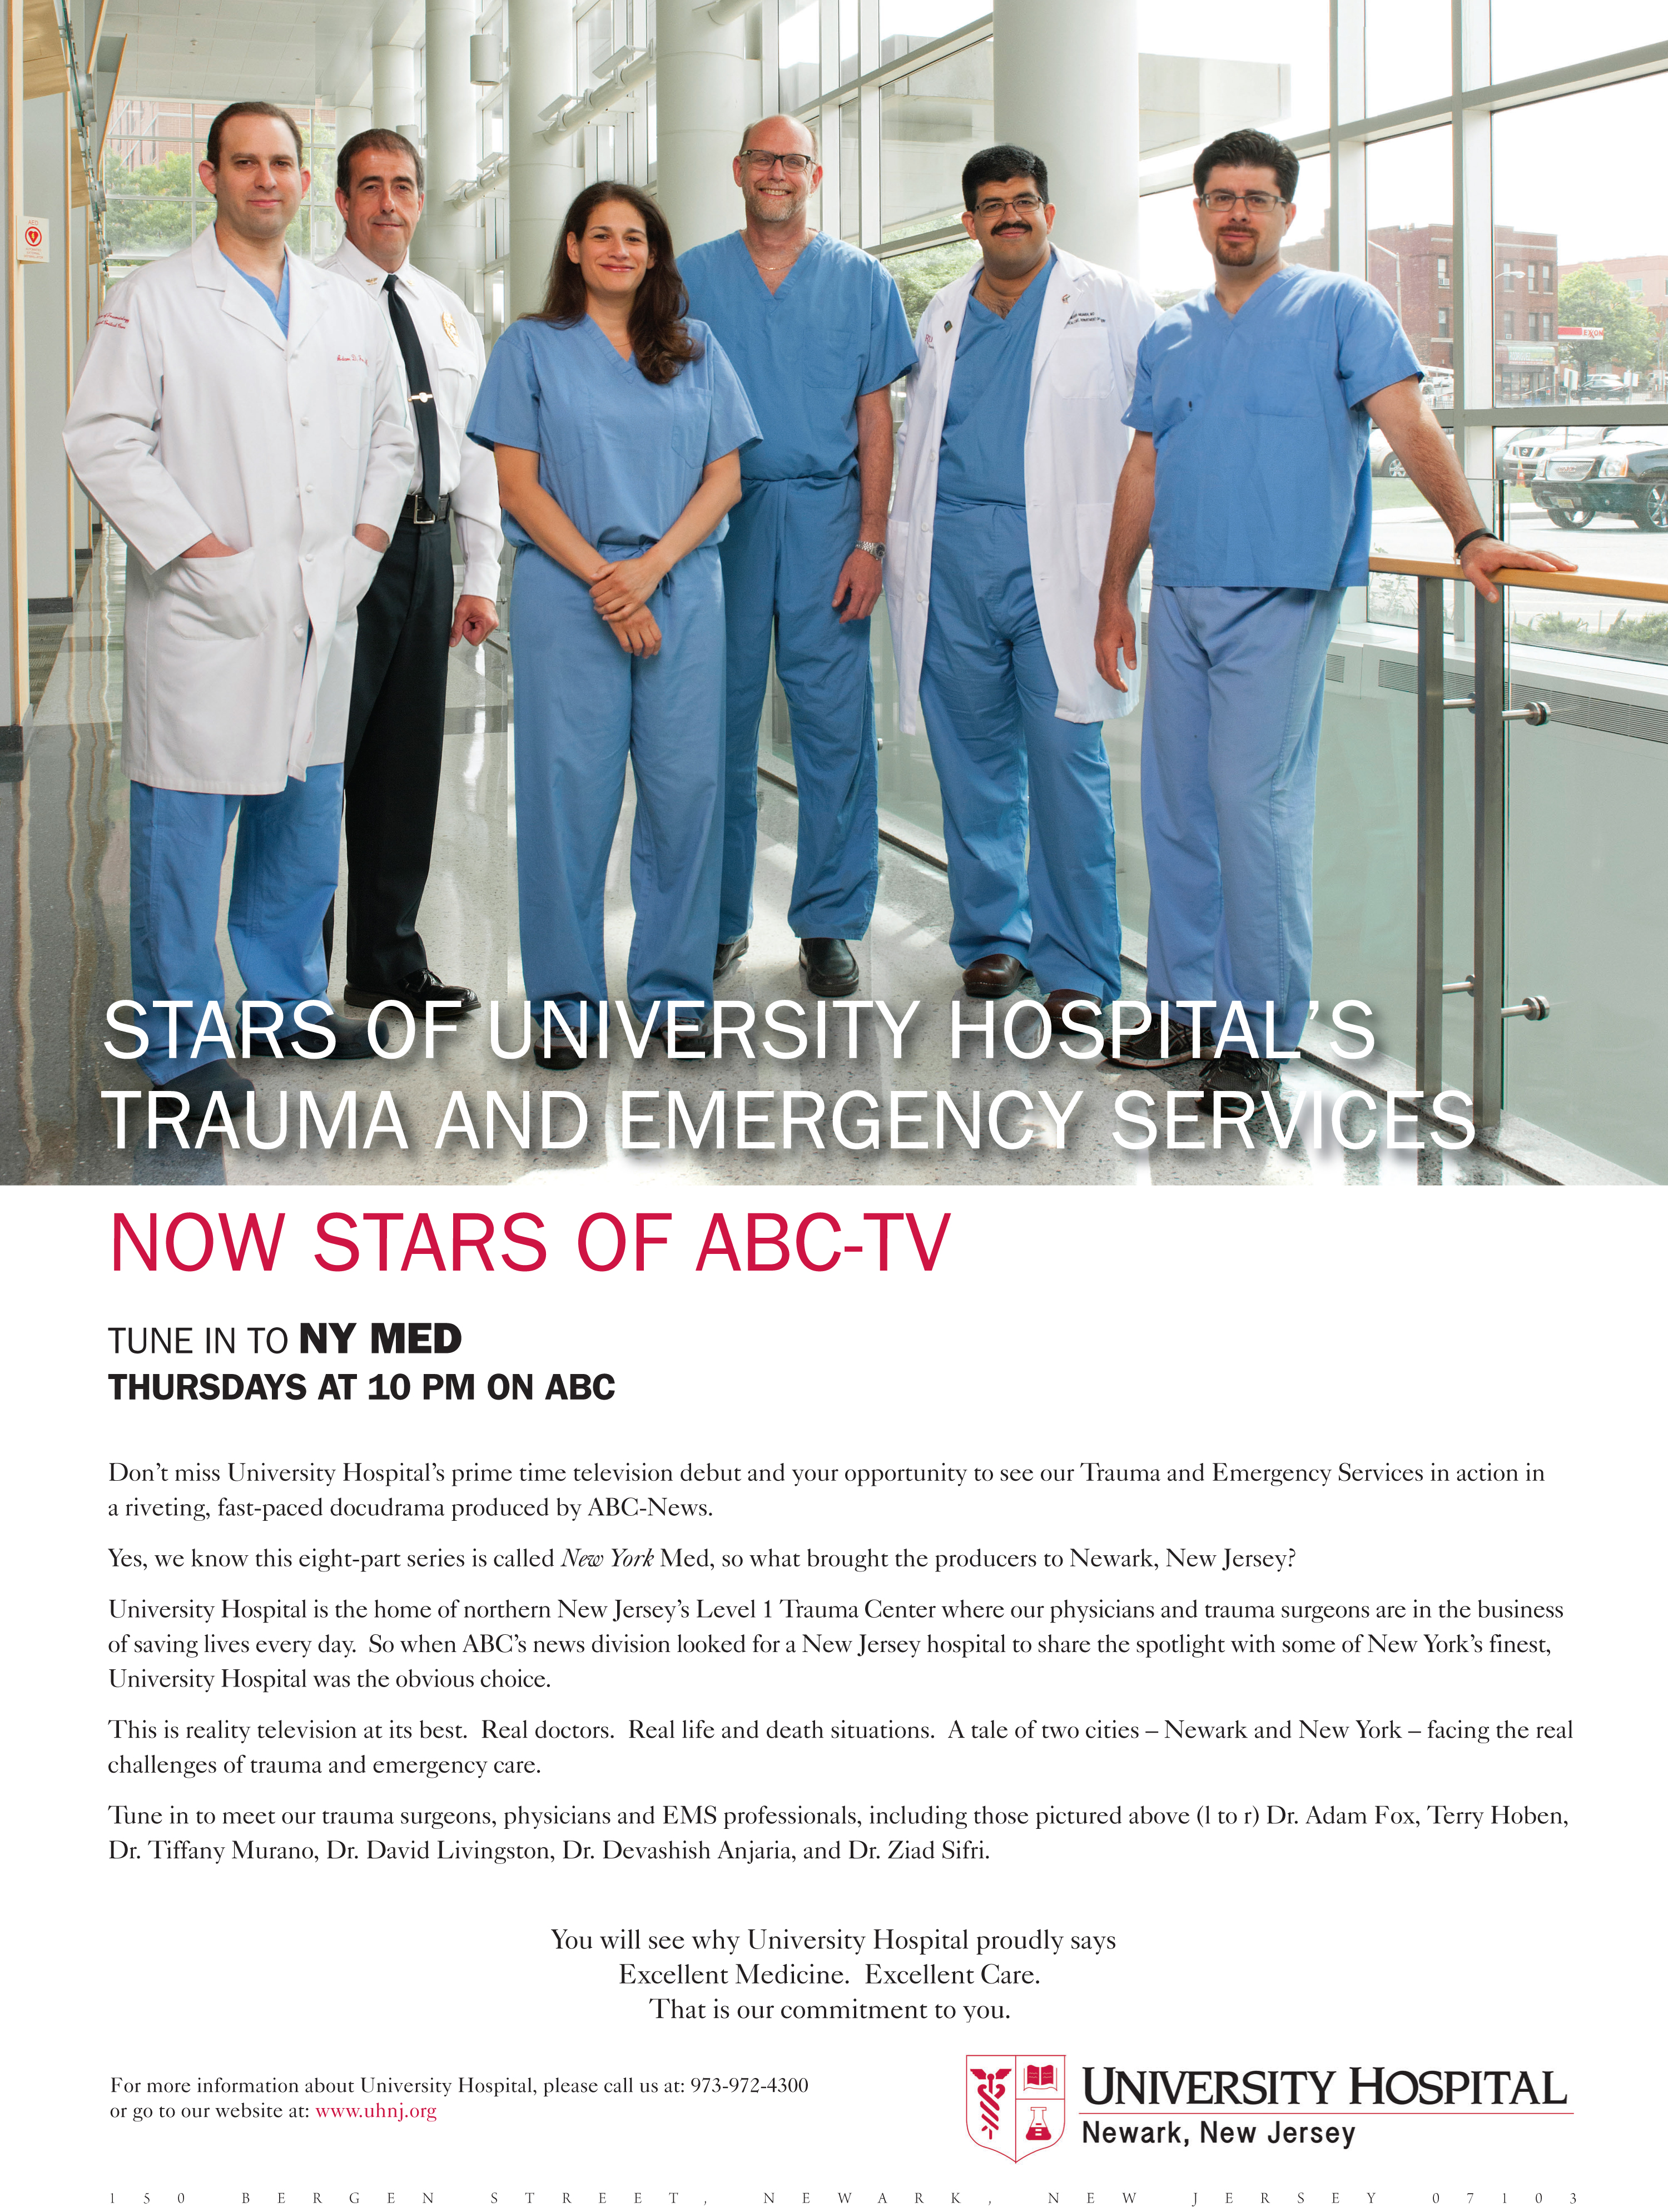 Stars Of University Hospital's Trauma And Emergency Services